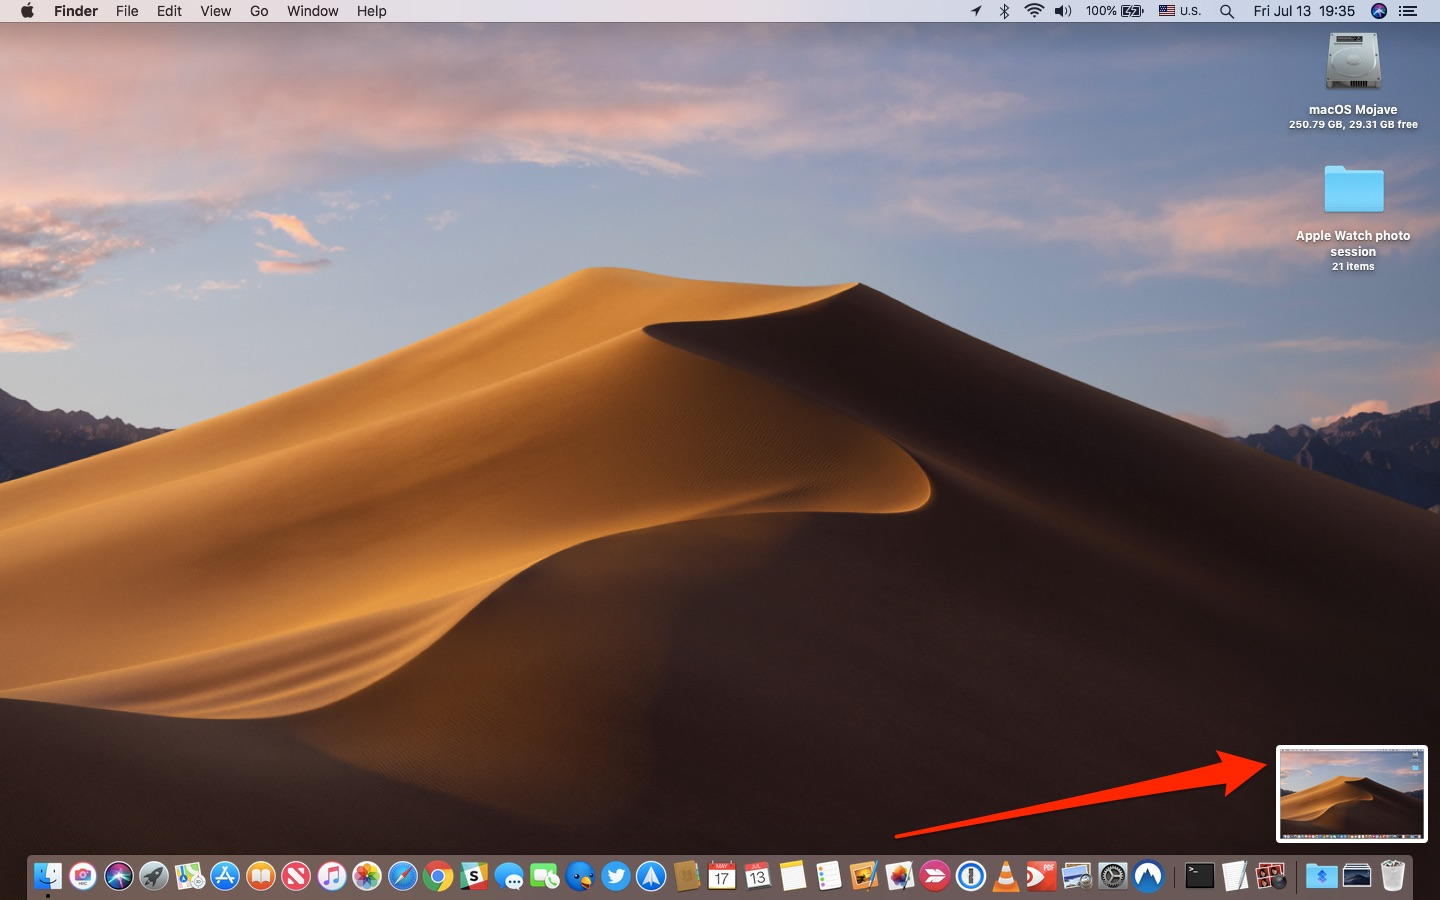 Take Mac screenshots - Taking a Mac screenshots in macOS Mojave